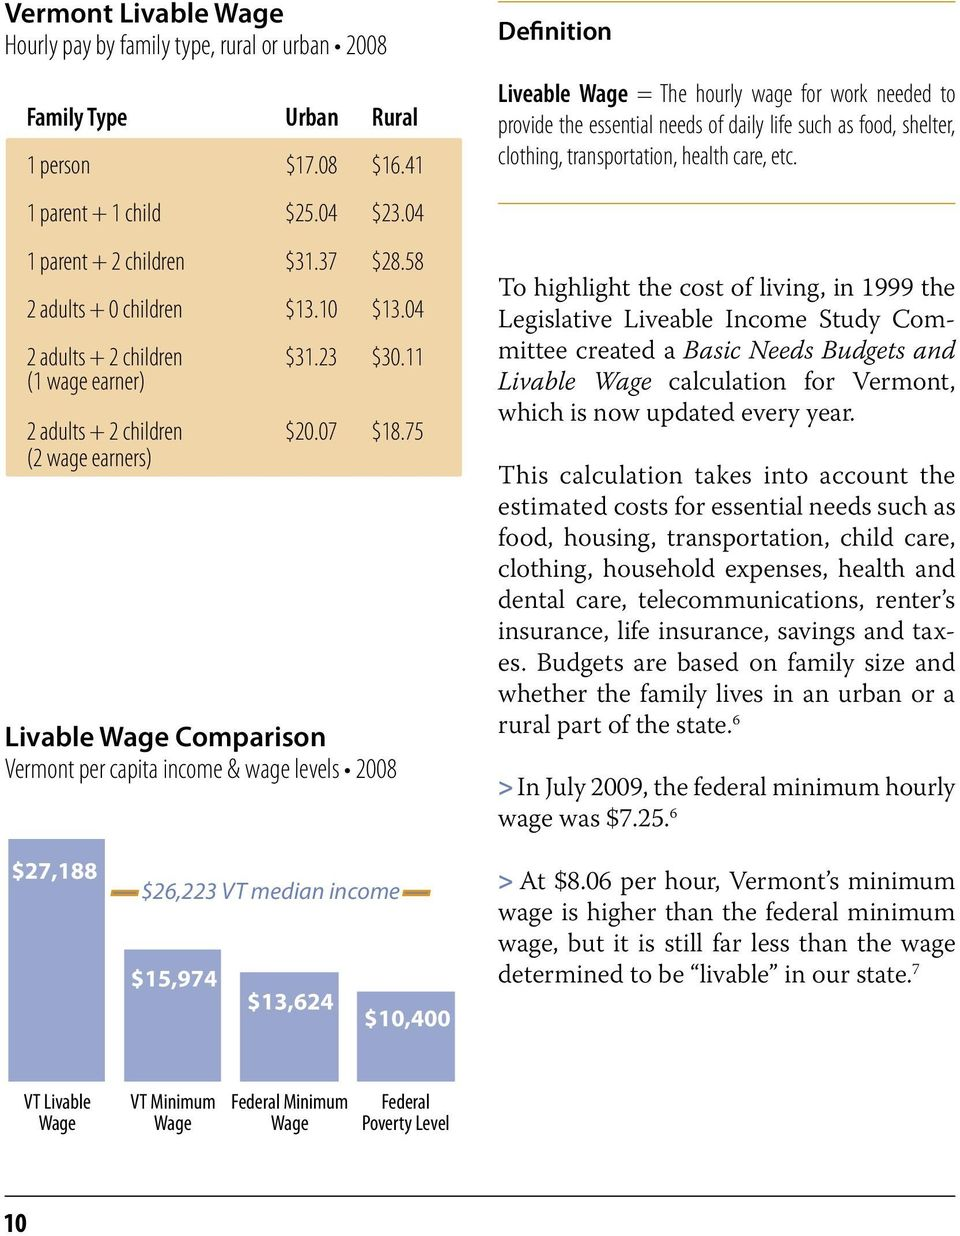 75 (2 wage earners) Livable Wage Comparison Vermont per capita income & wage levels 2008 22% $27,188 $26,223 VT median income $15,974 13% $13,624 $10,400 Definition Liveable Wage = The hourly wage